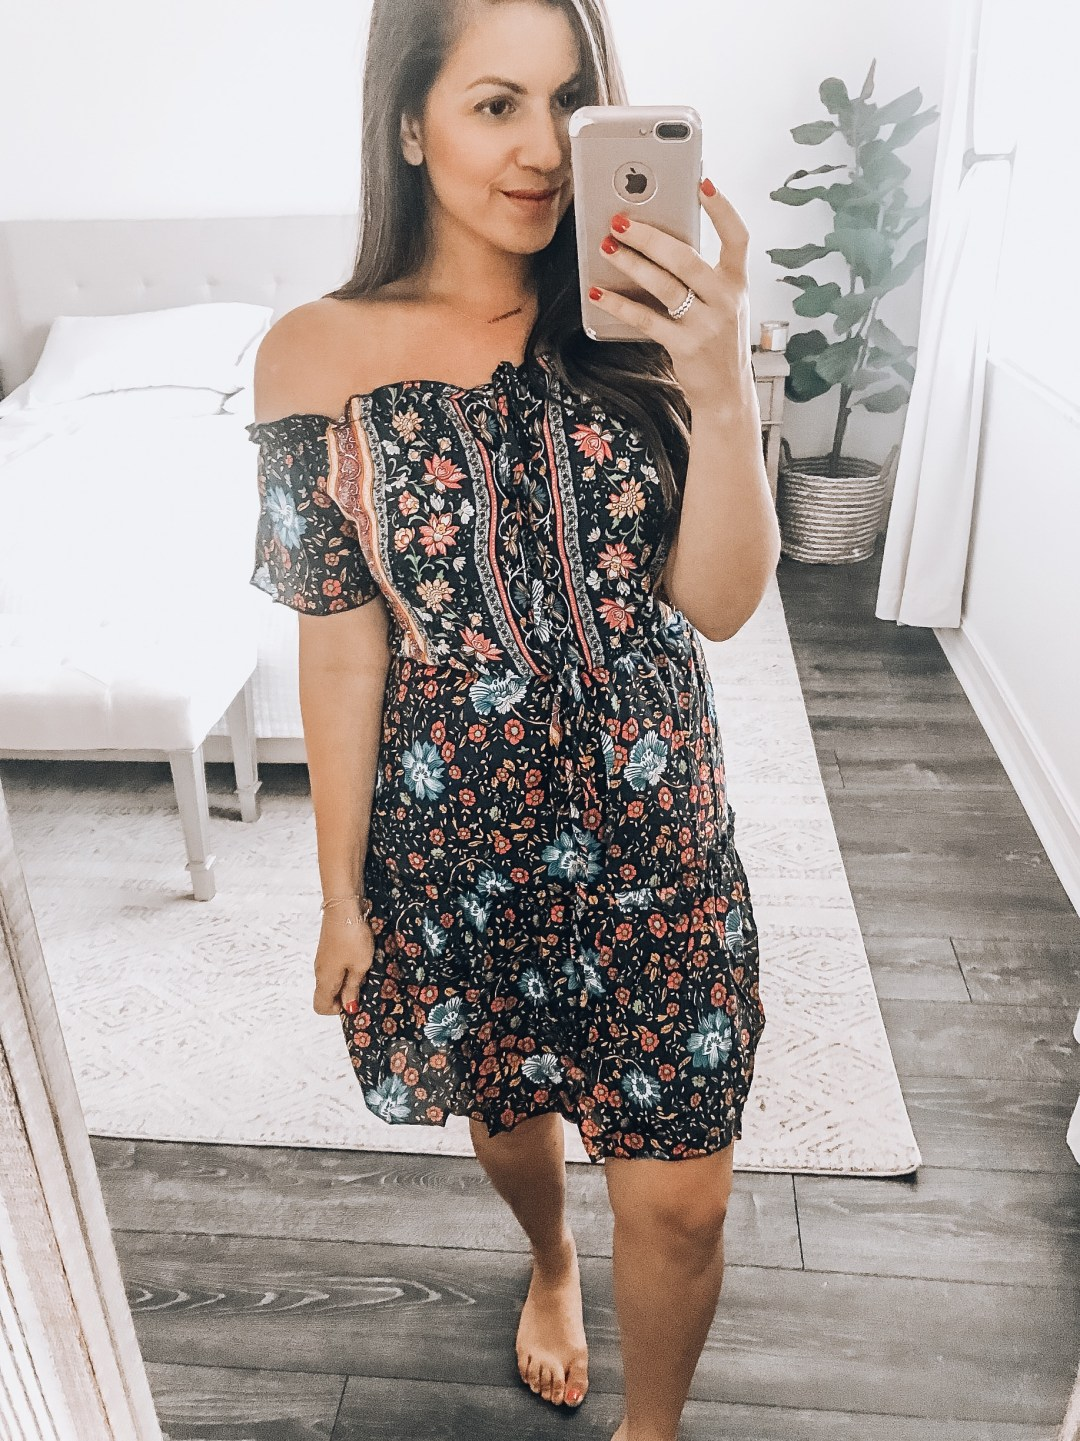 Amazon floral off shoulder boho mini dress, Amazon fashion boho dress